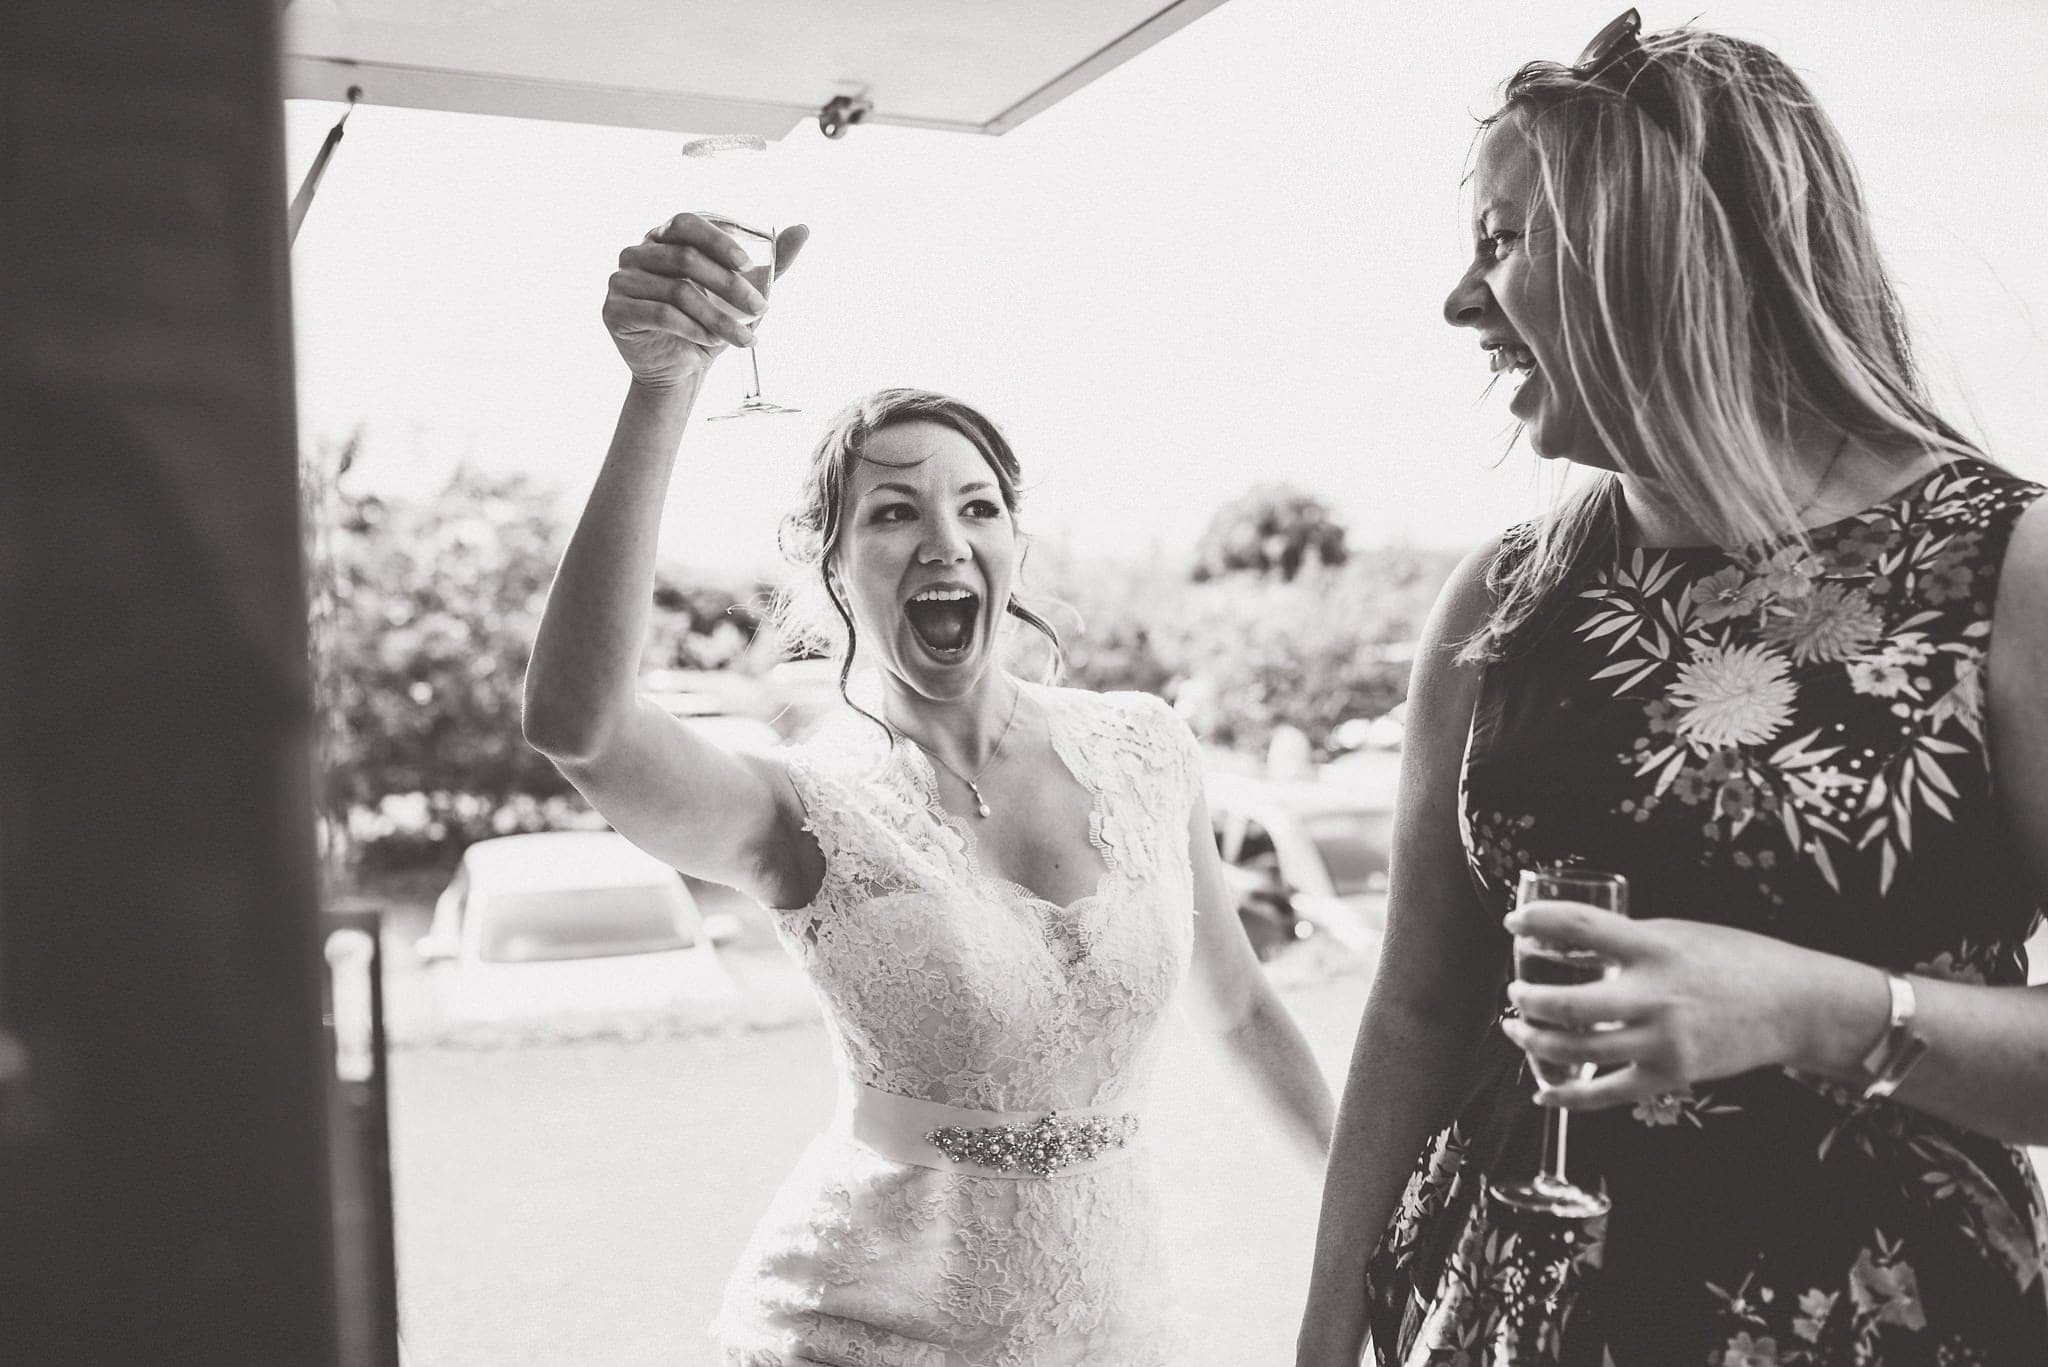 Bride raises enthusiastic toast with a friend